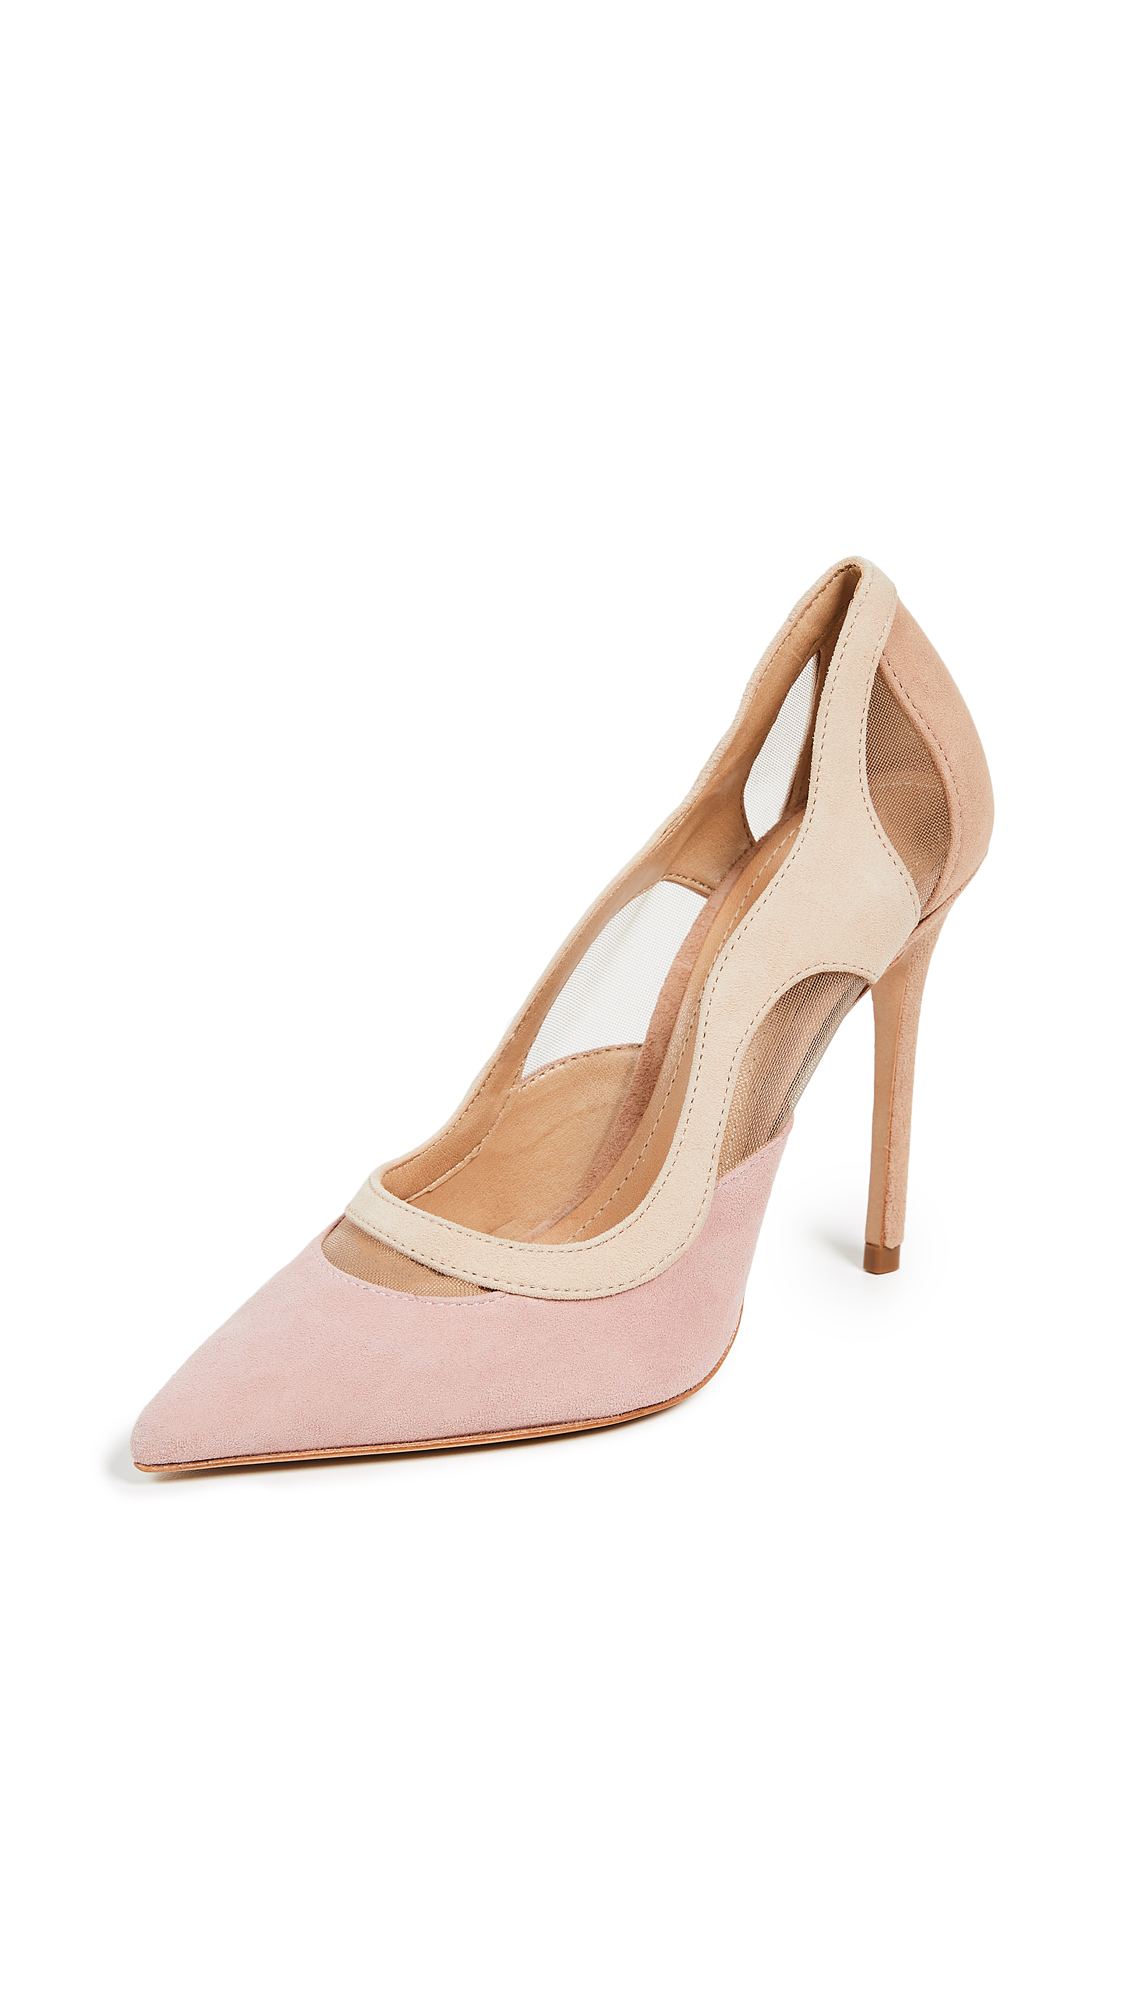 Schutz Poliany Point Toe Pumps - Pop